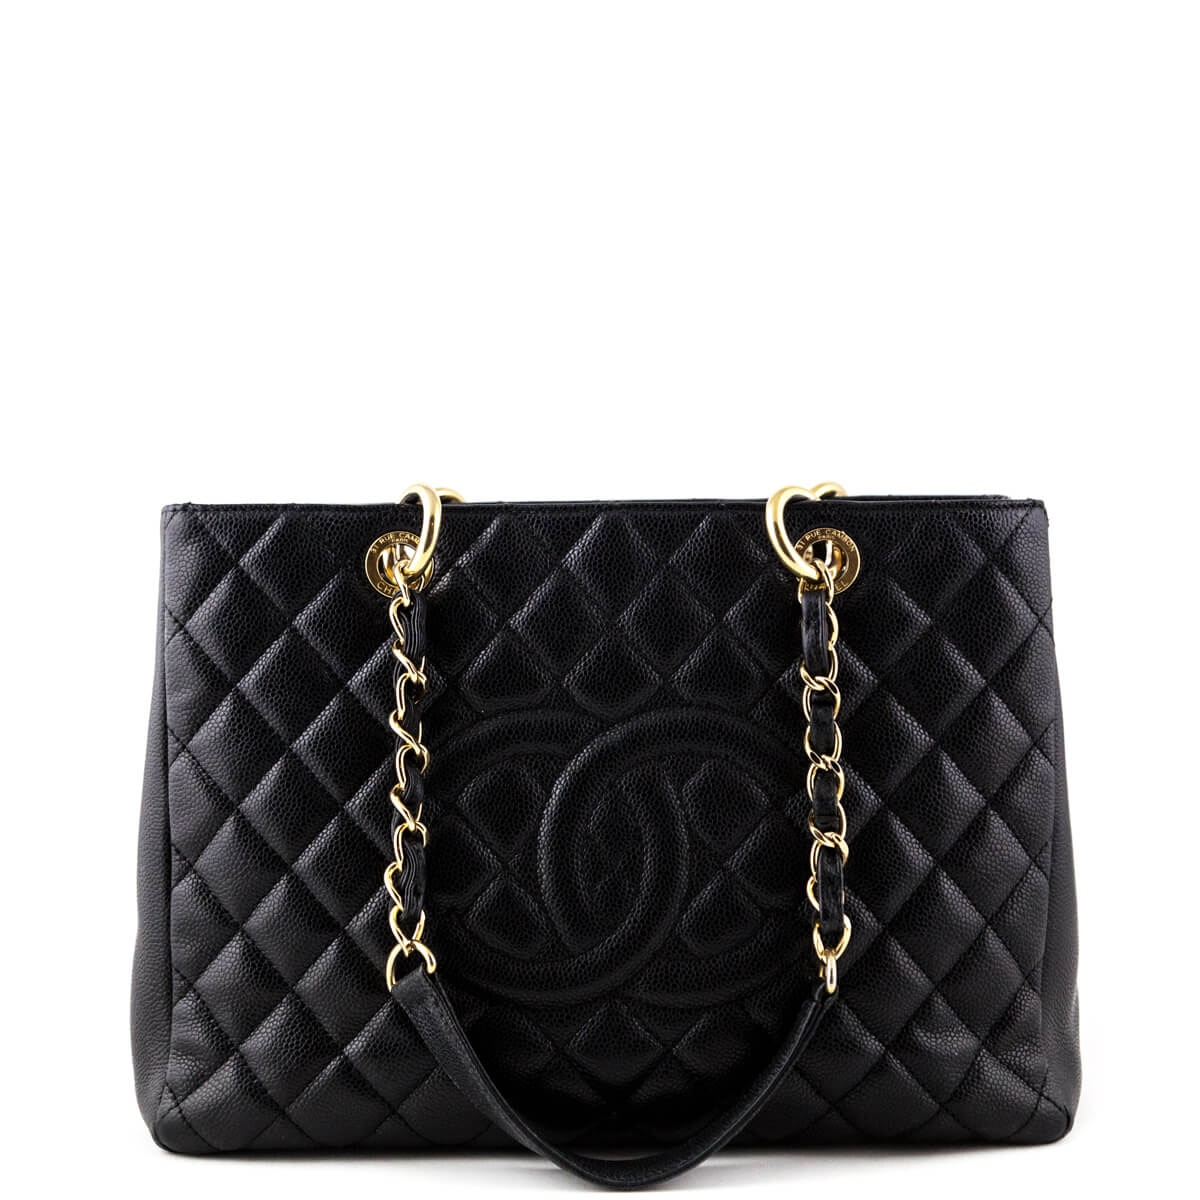 cd2853d839fb Chanel Black Caviar Grand Shopping Tote GST GHW - LOVE that BAG - Preowned  Authentic Designer ...